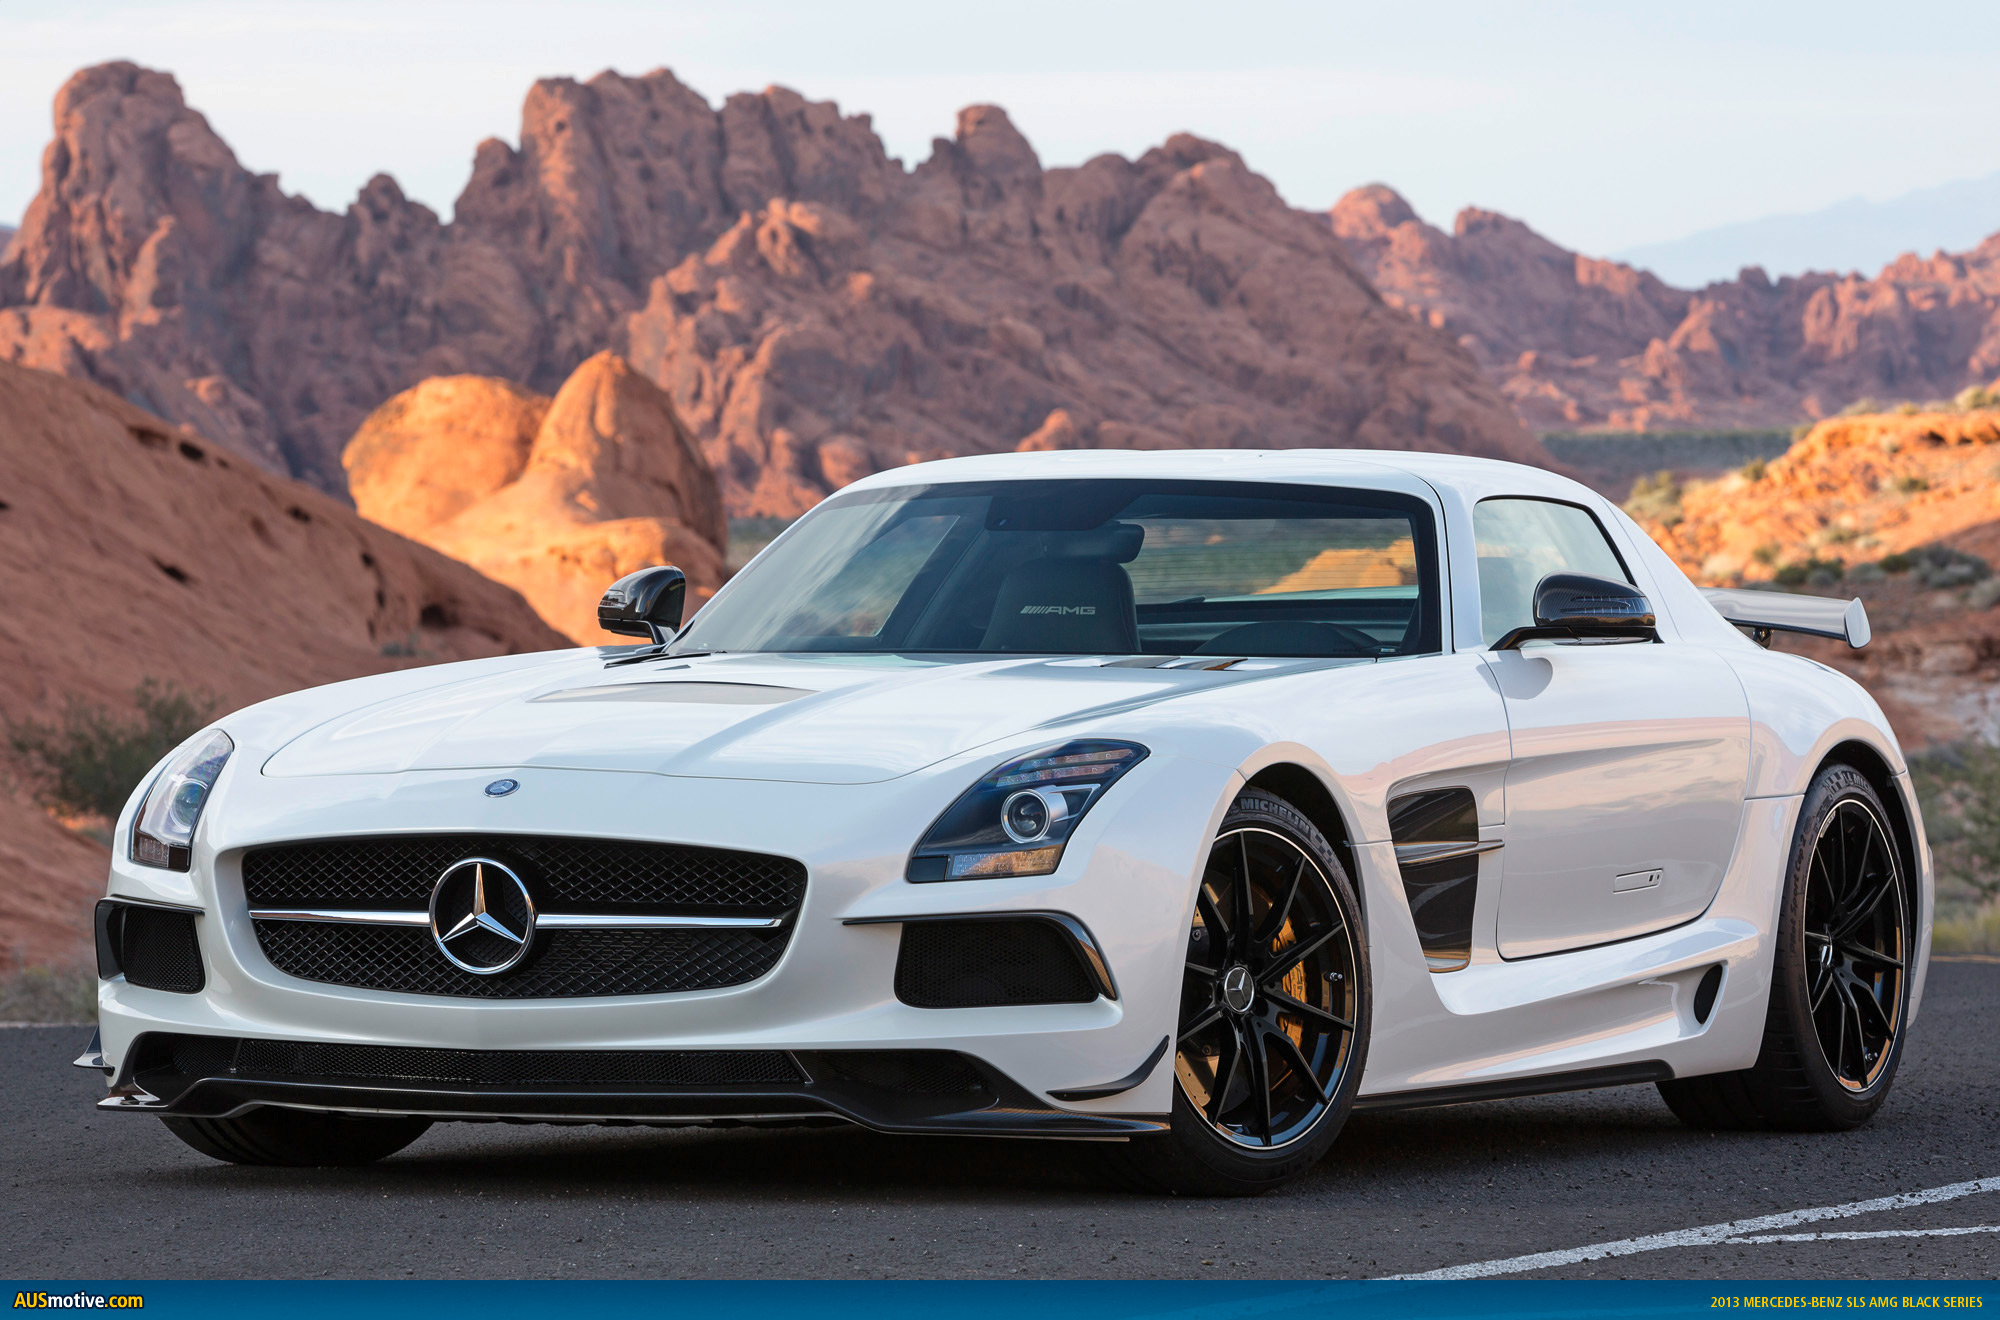 2013 mercedes sls amg black series revealed for A series mercedes benz